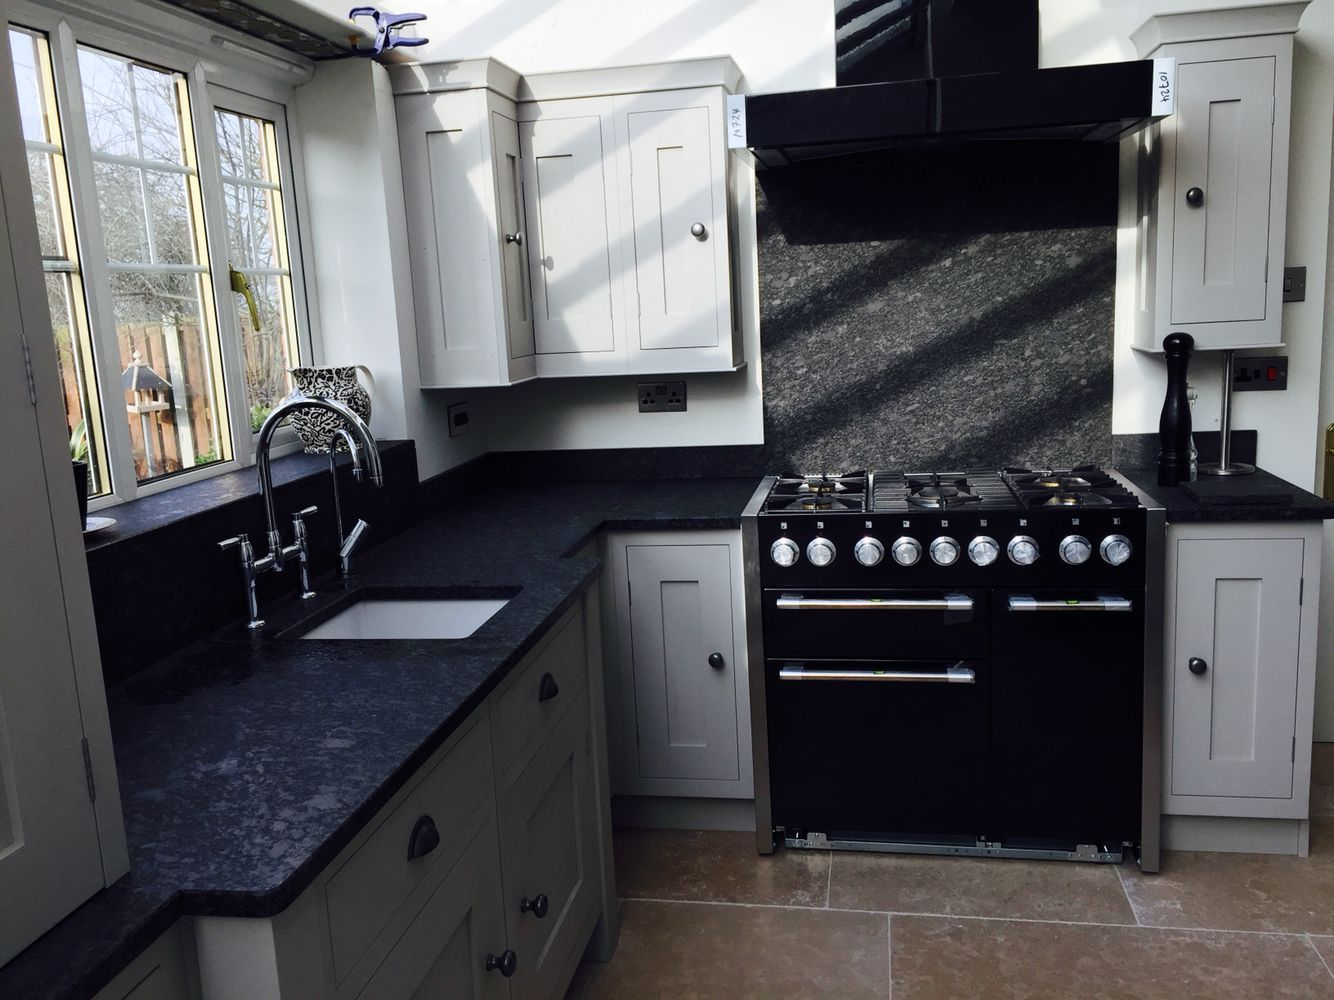 Best Hand Panted Kitchen In Farrow And Ball Purbeck Stone With 640 x 480